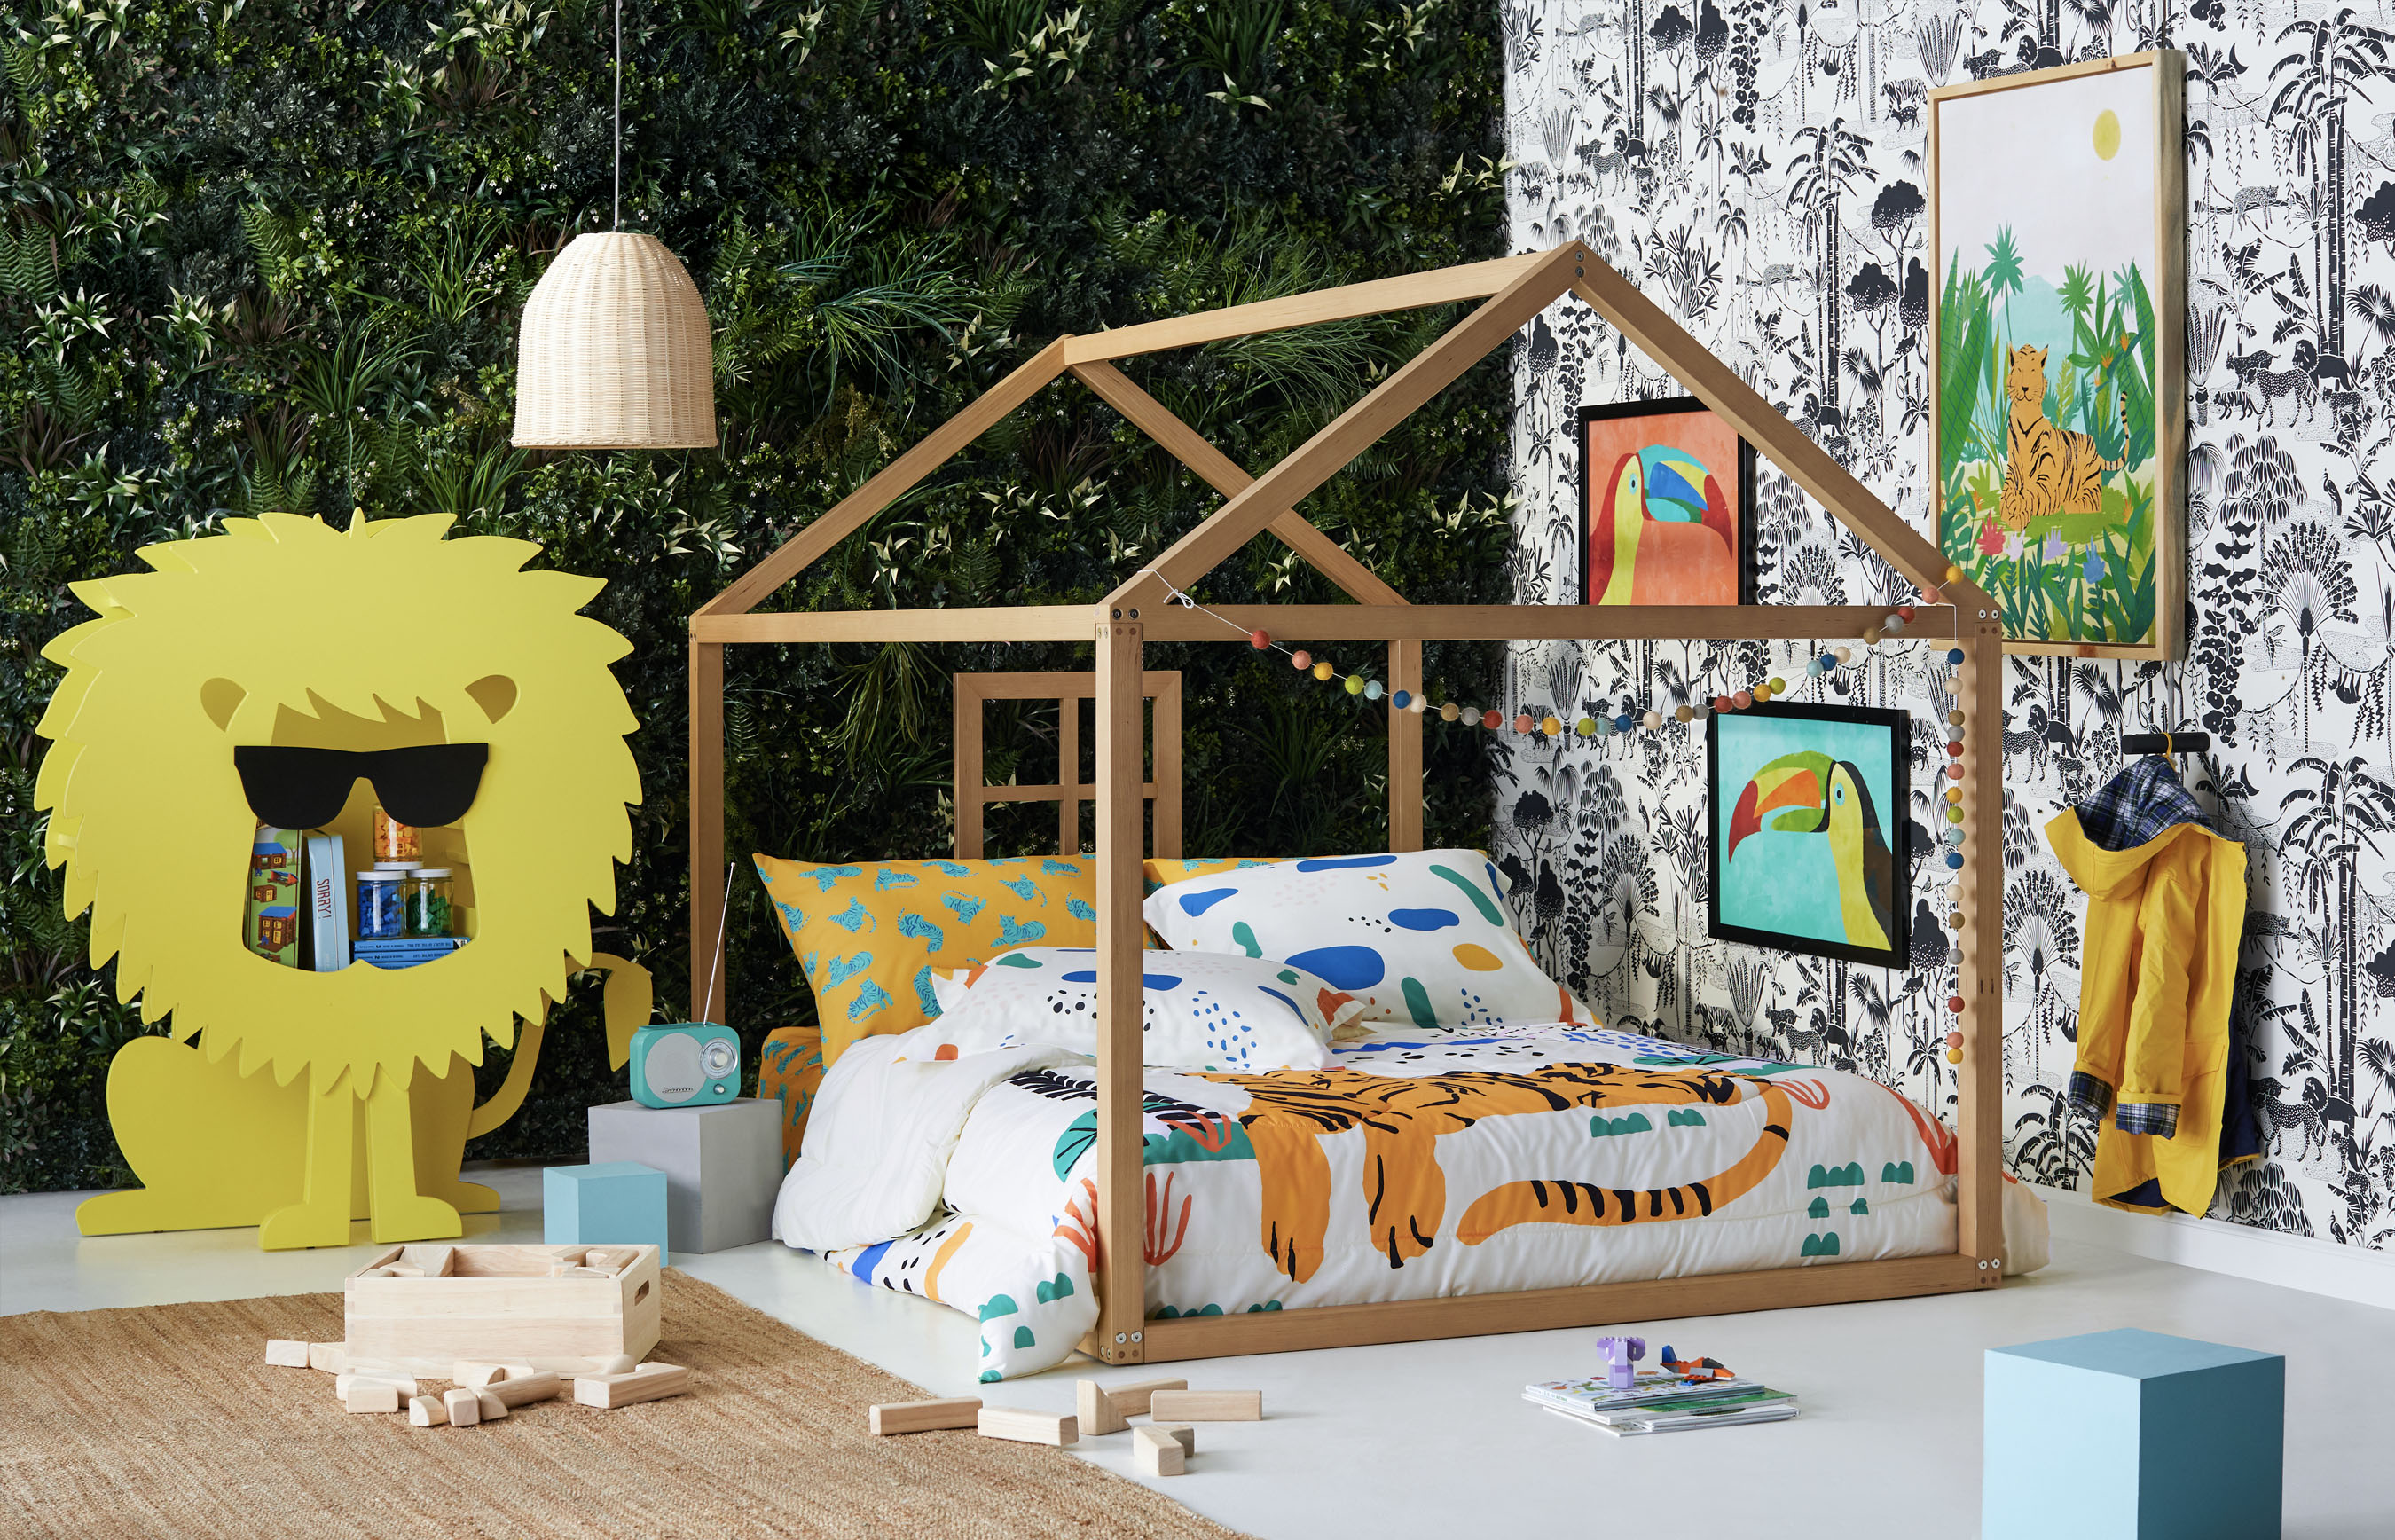 Photo of a kids bedroom with jungle designs